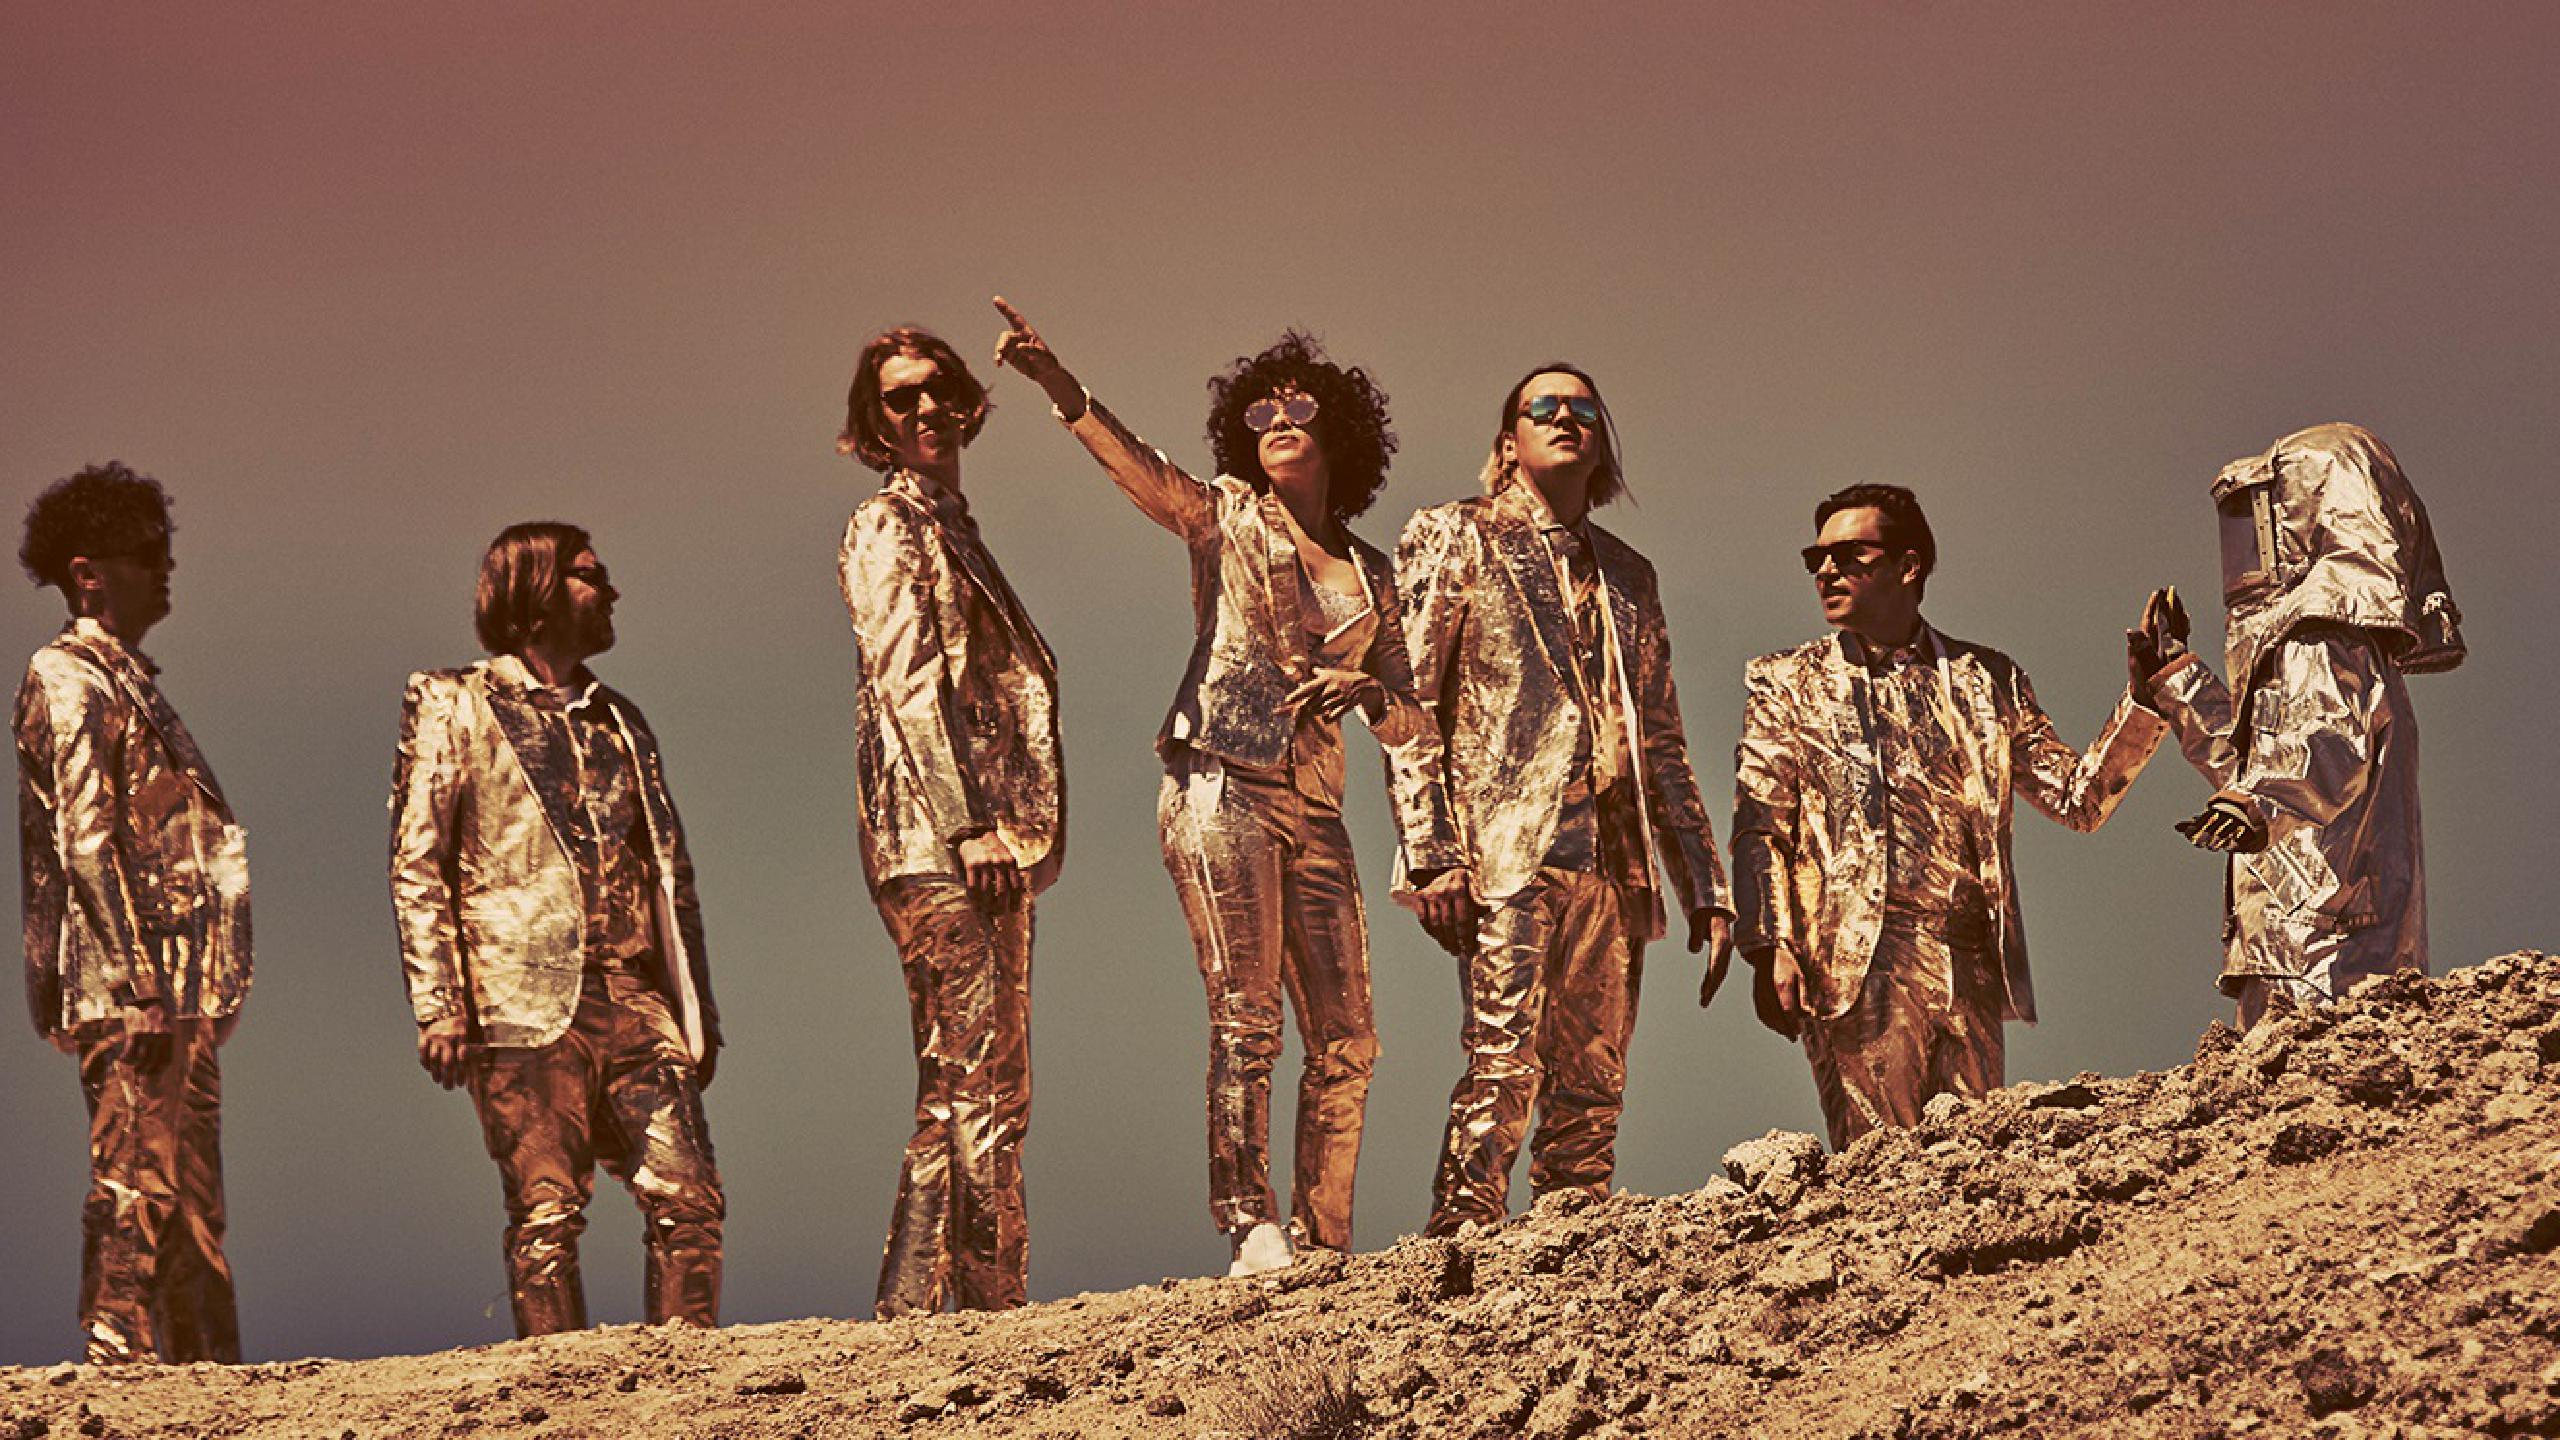 Arcade Fire Tour Dates 2020 Arcade Fire tour dates 2019 2020. Arcade Fire tickets and concerts